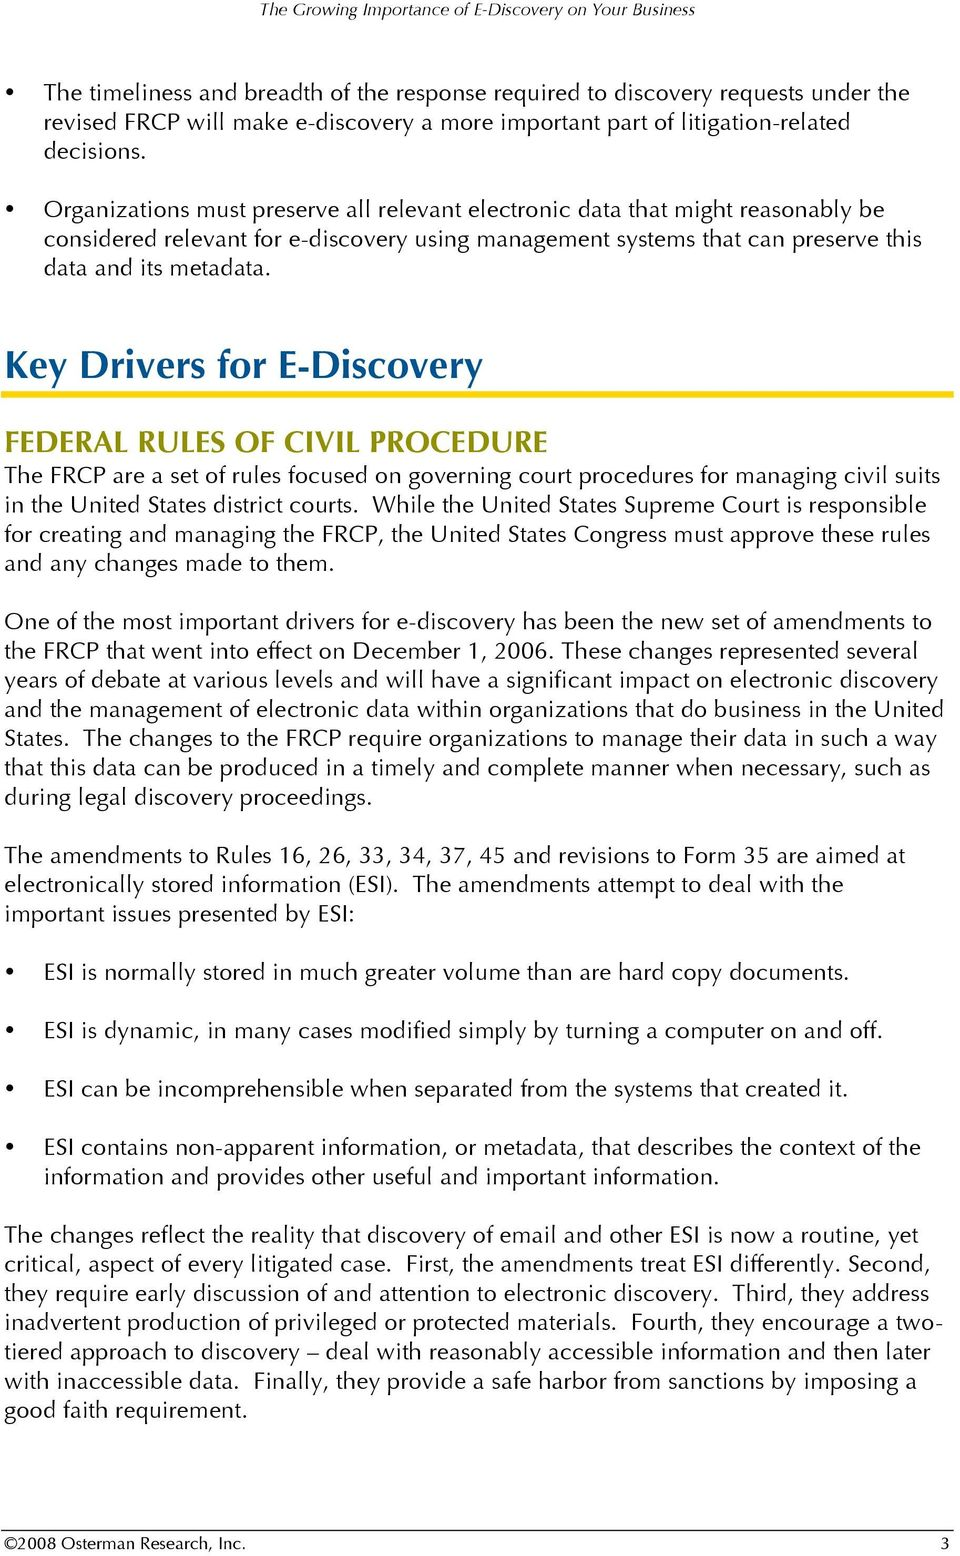 Key Drivers for E-Discovery FEDERAL RULES OF CIVIL PROCEDURE The FRCP are a set of rules focused on governing court procedures for managing civil suits in the United States district courts.